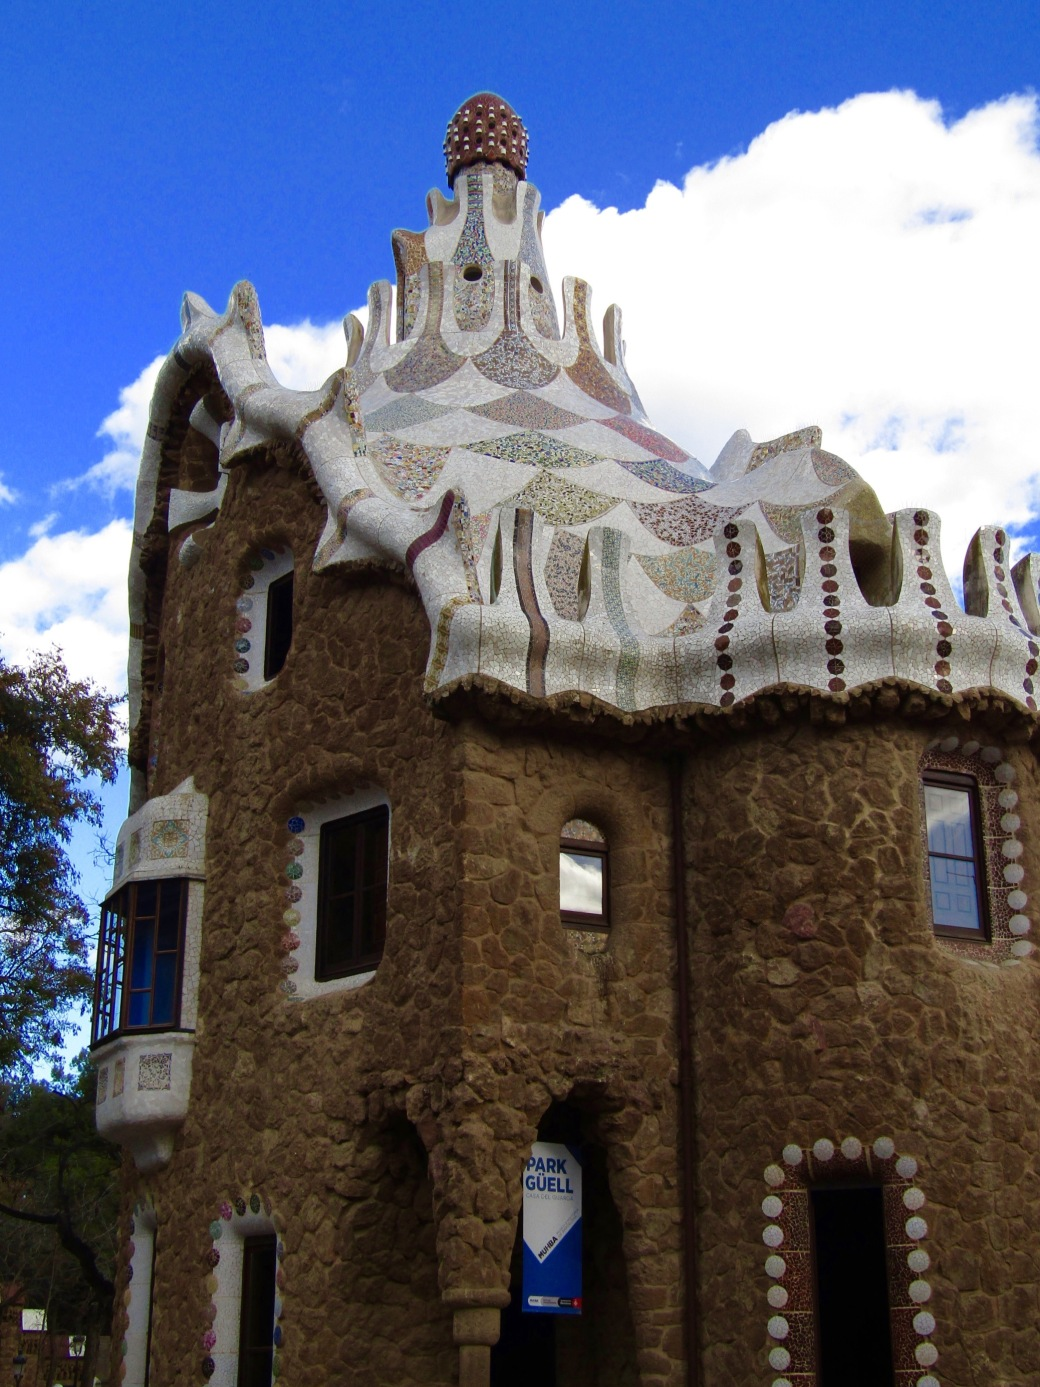 The Porter's Lodge at Park Güell.